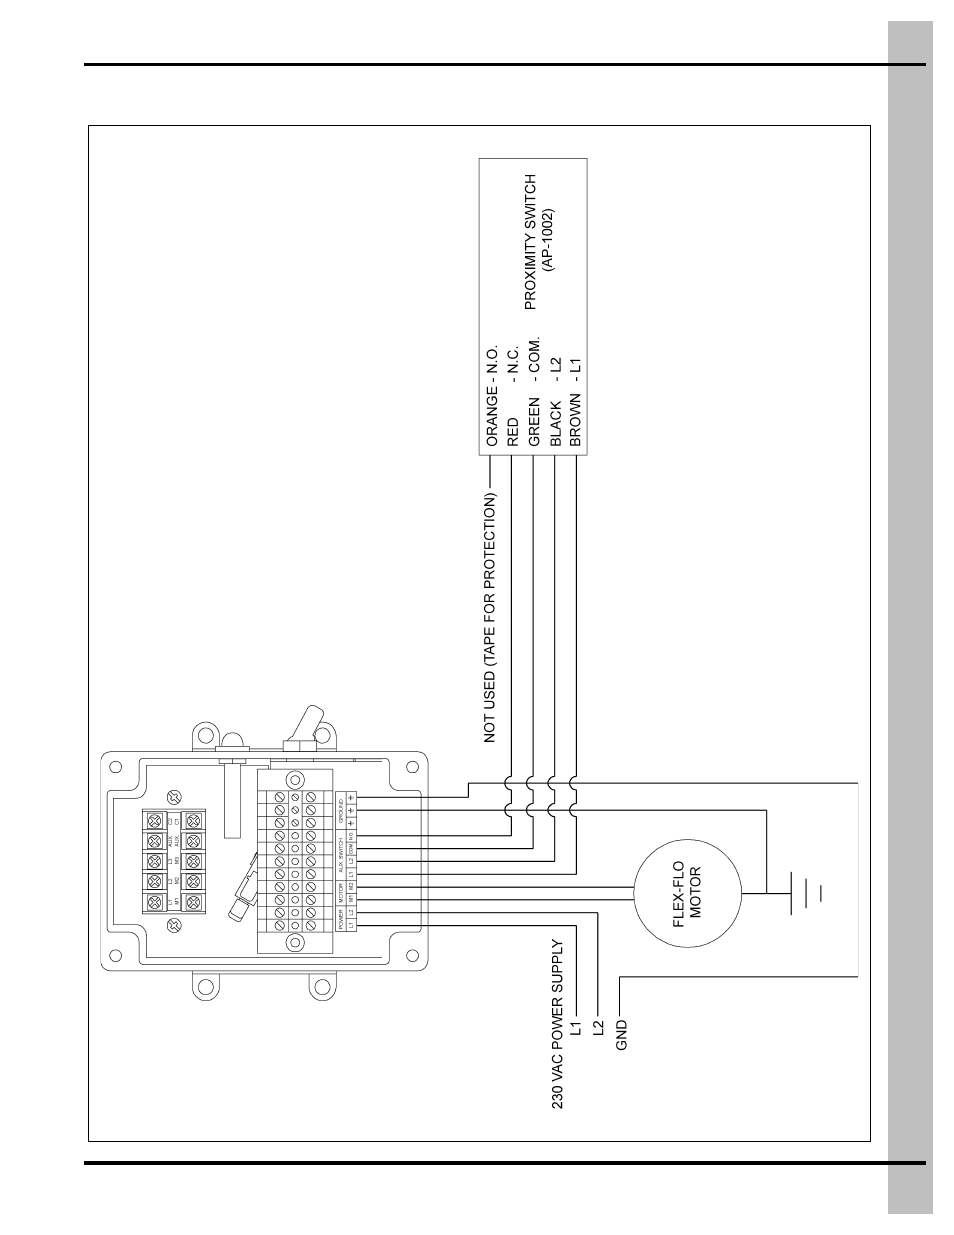 Flex Flo Control With Proximity Switch Ap 1002 Grain Systems Bin Yamaha L2 Wiring Diagram Accessories Pneg 914 User Manual Page 59 64